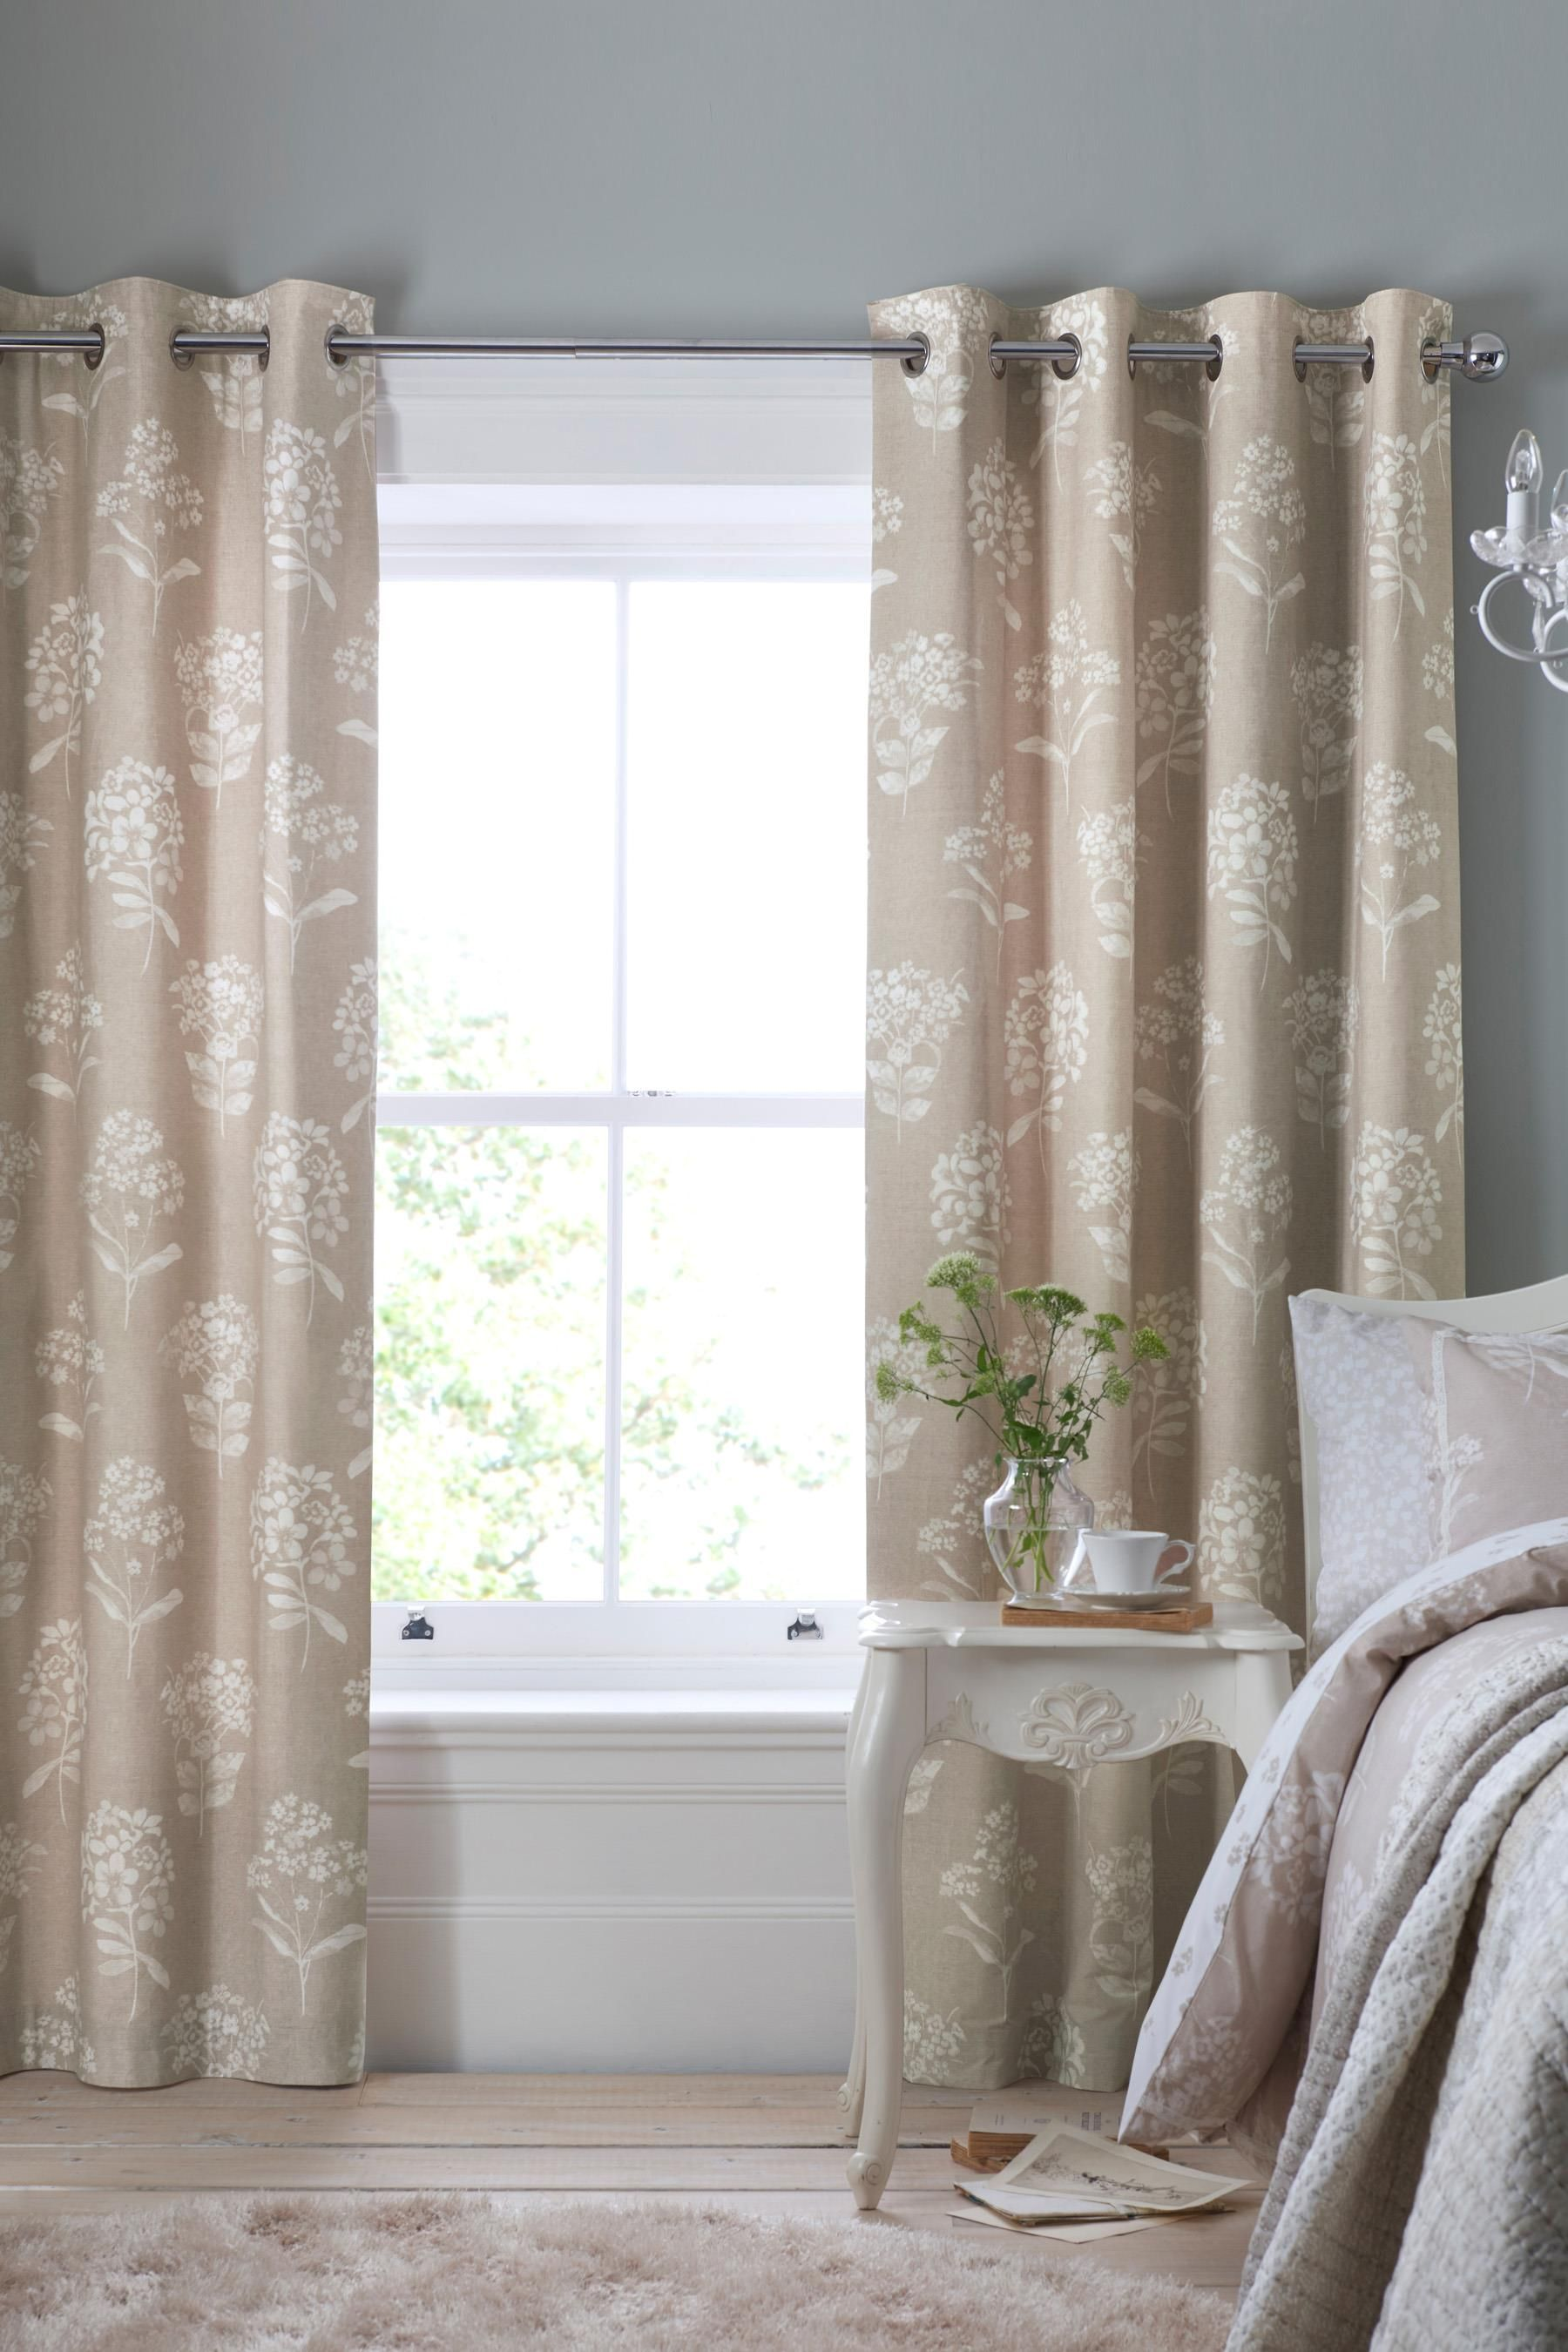 Cotton Rich Lace Fl Eyelet Curtains From The Next Uk Online